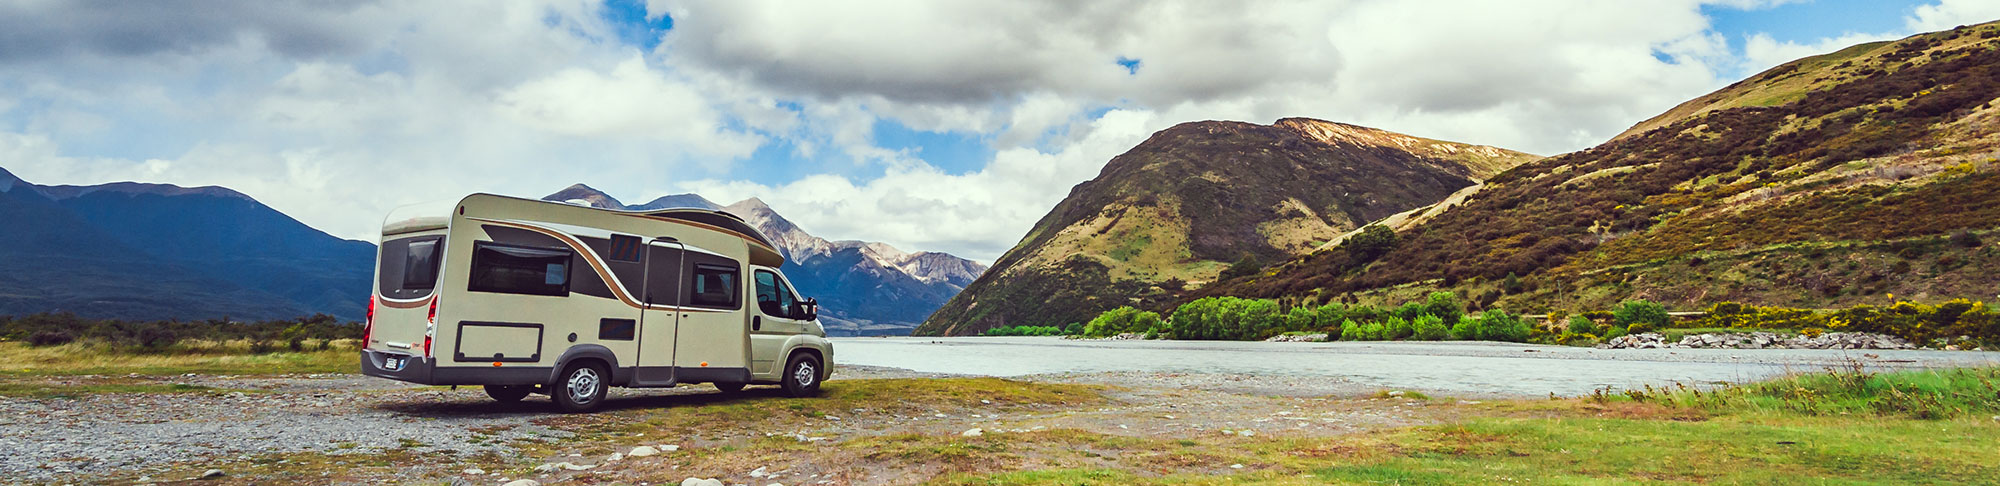 campervan parked at the base of a mountain range cloudy sky